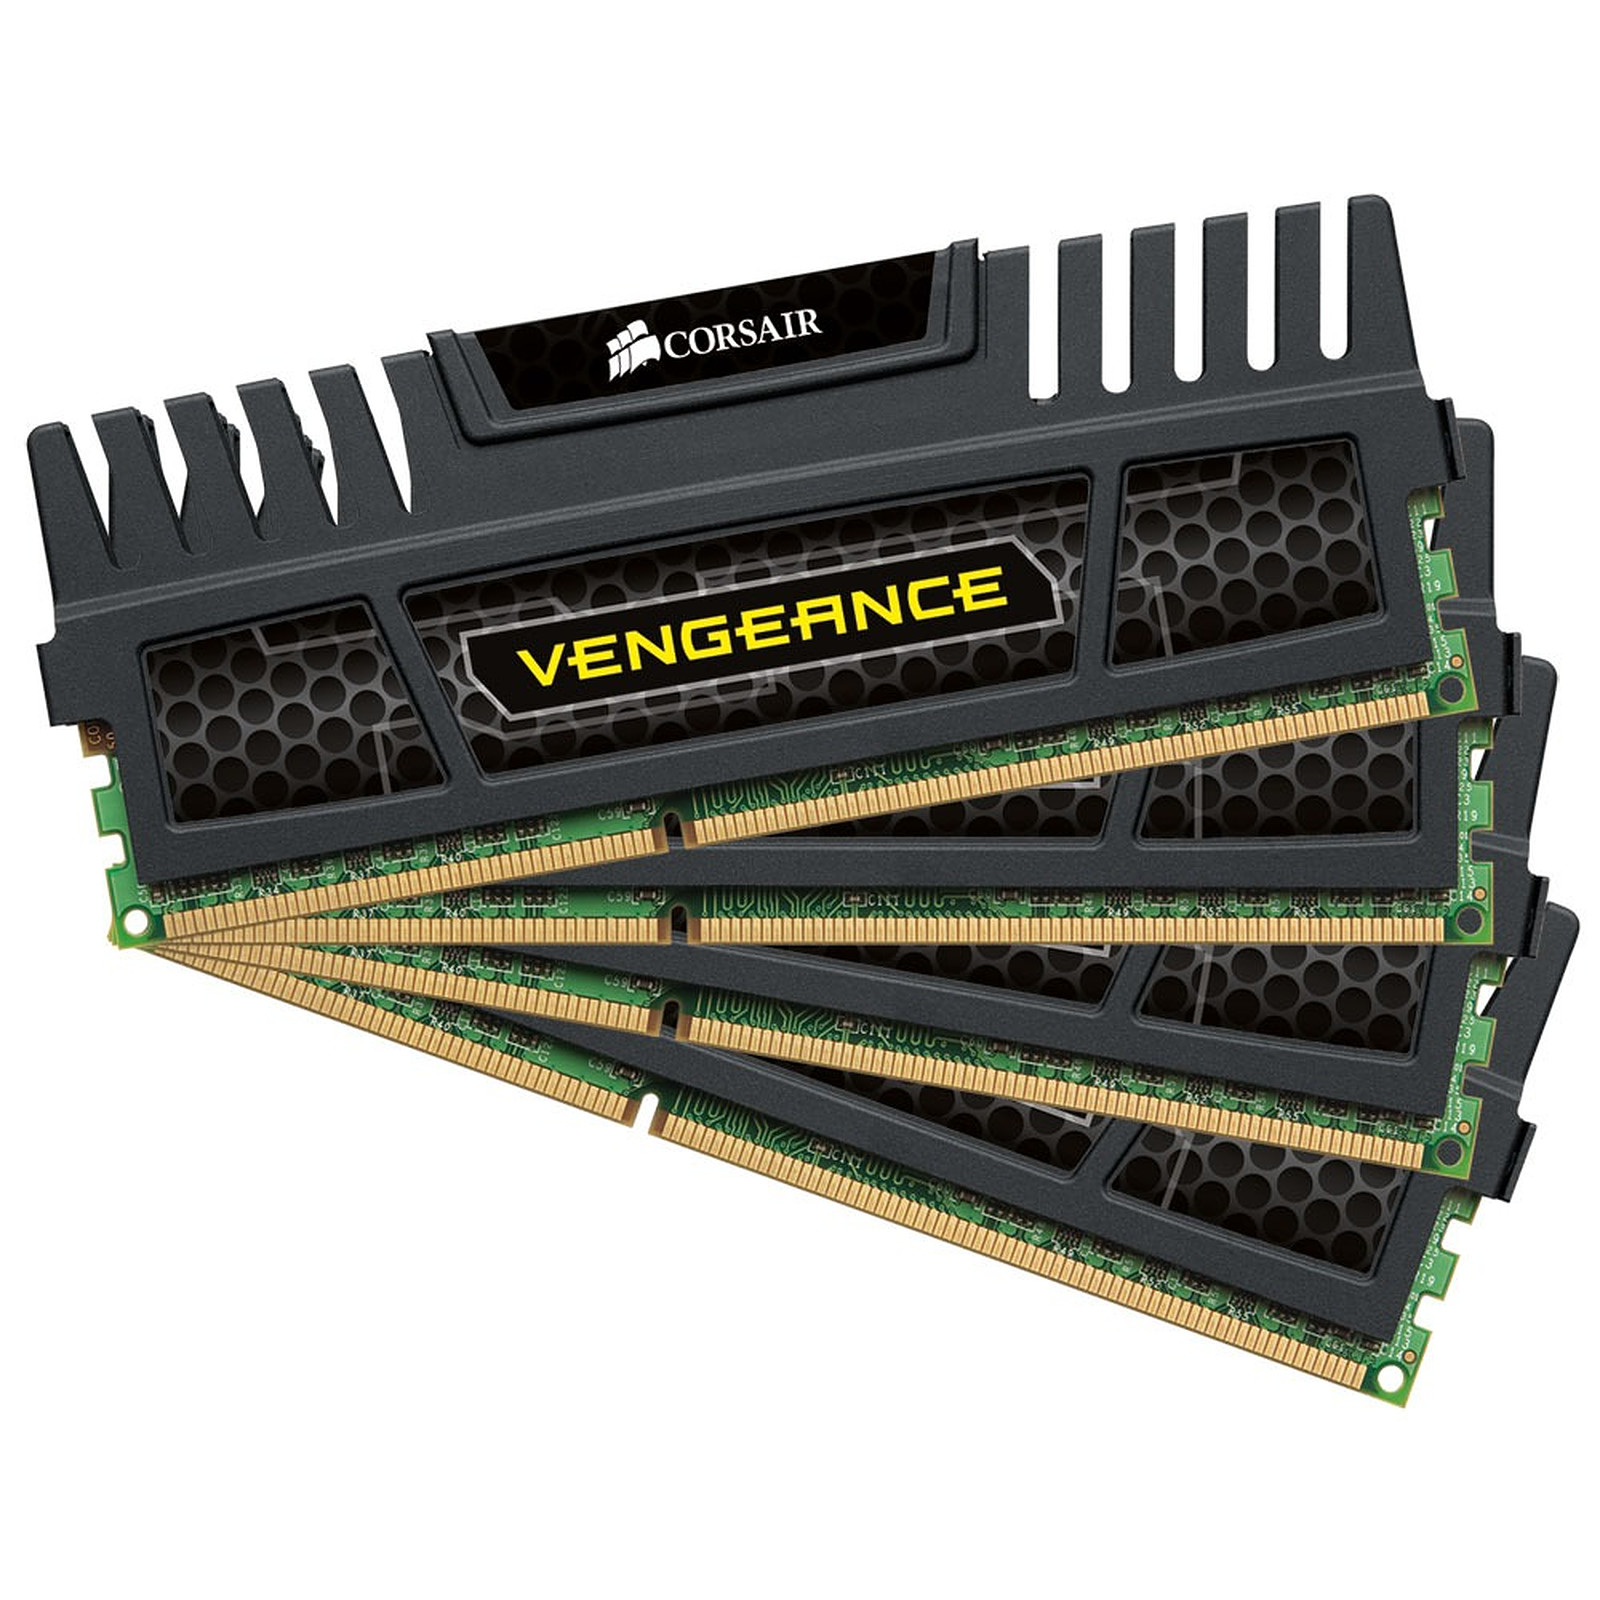 Corsair Vengeance Series 32 Go (4 x 8 Go) DDR3 1600 MHz CL10